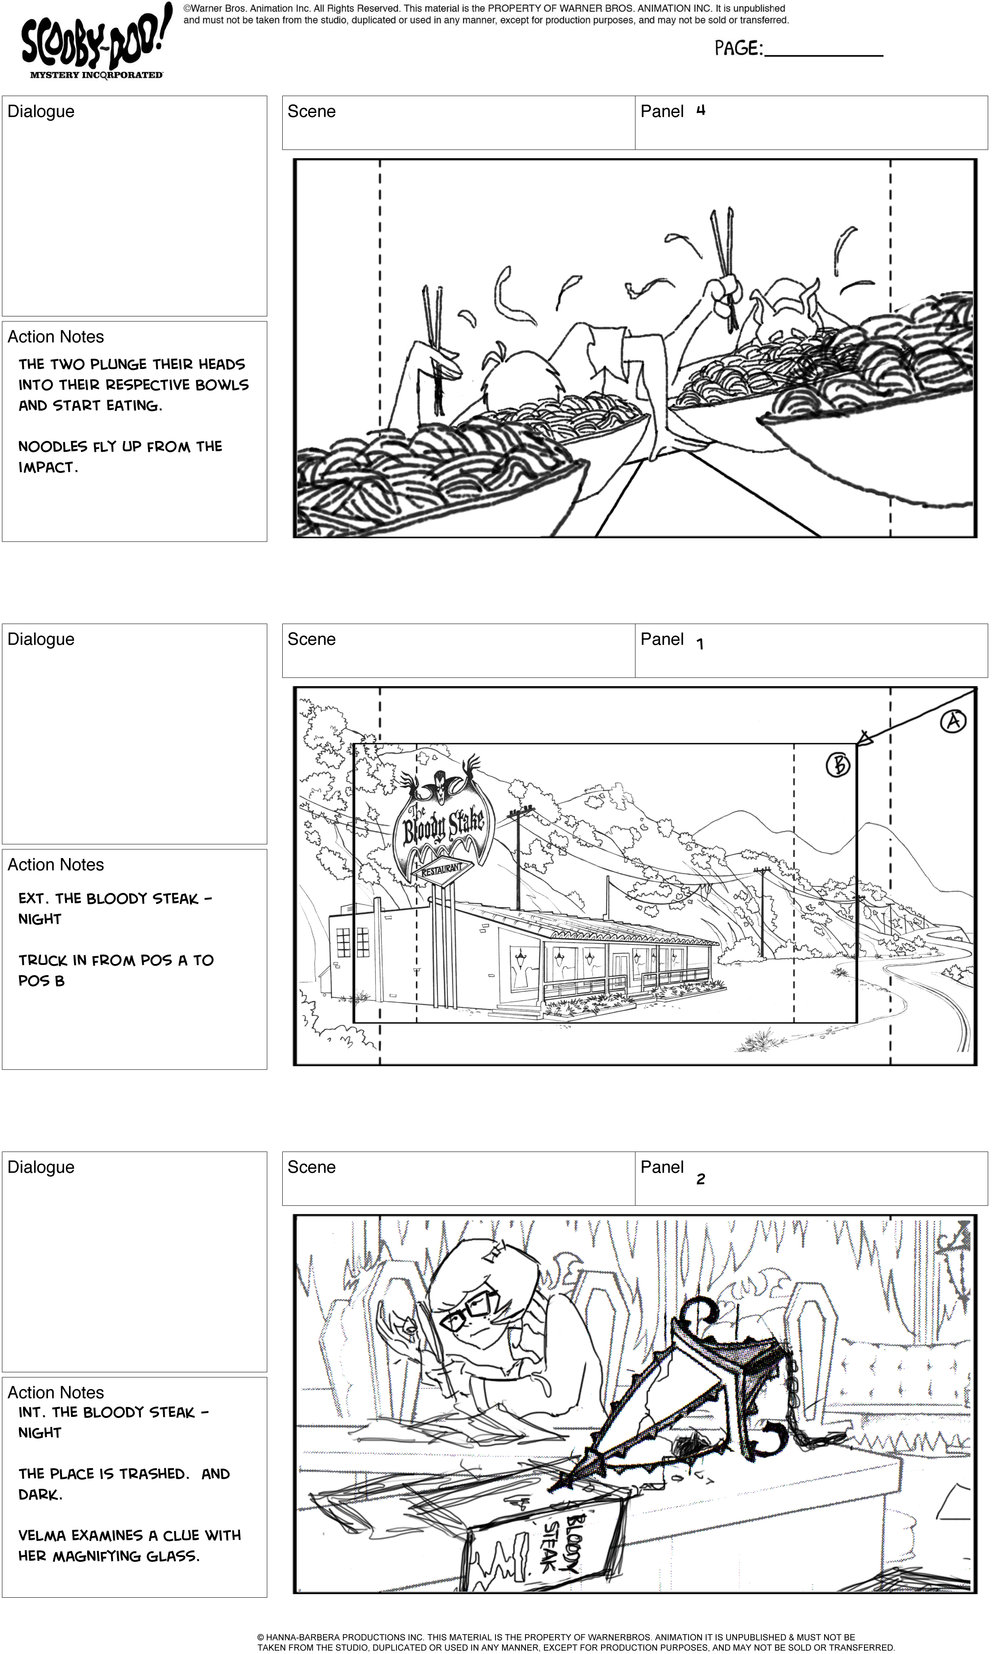 Scooby Storyboard page 13.jpg